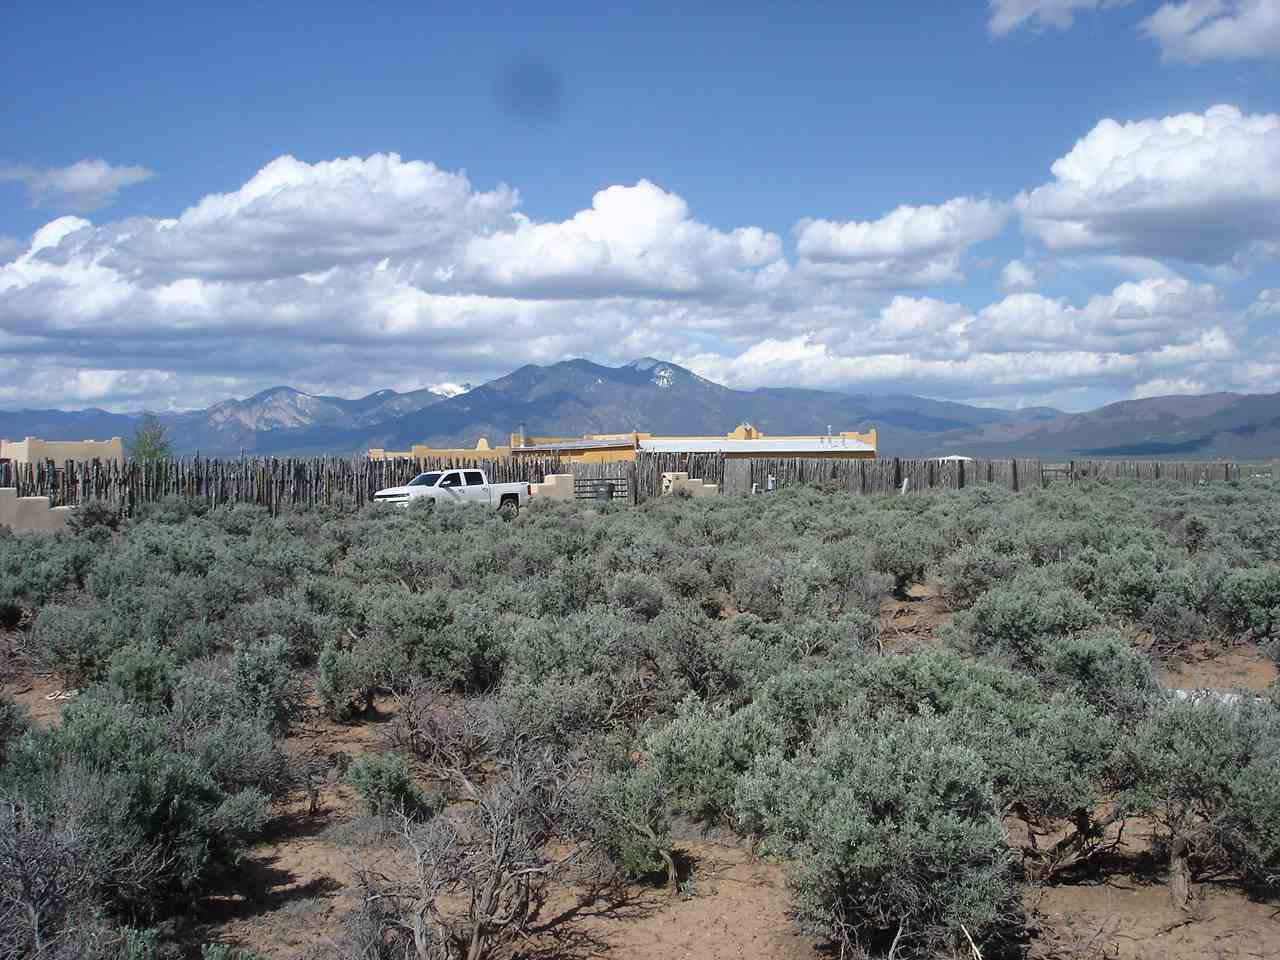 Off Cactus Flower Rd, Ranchos de Taos, NM 87557